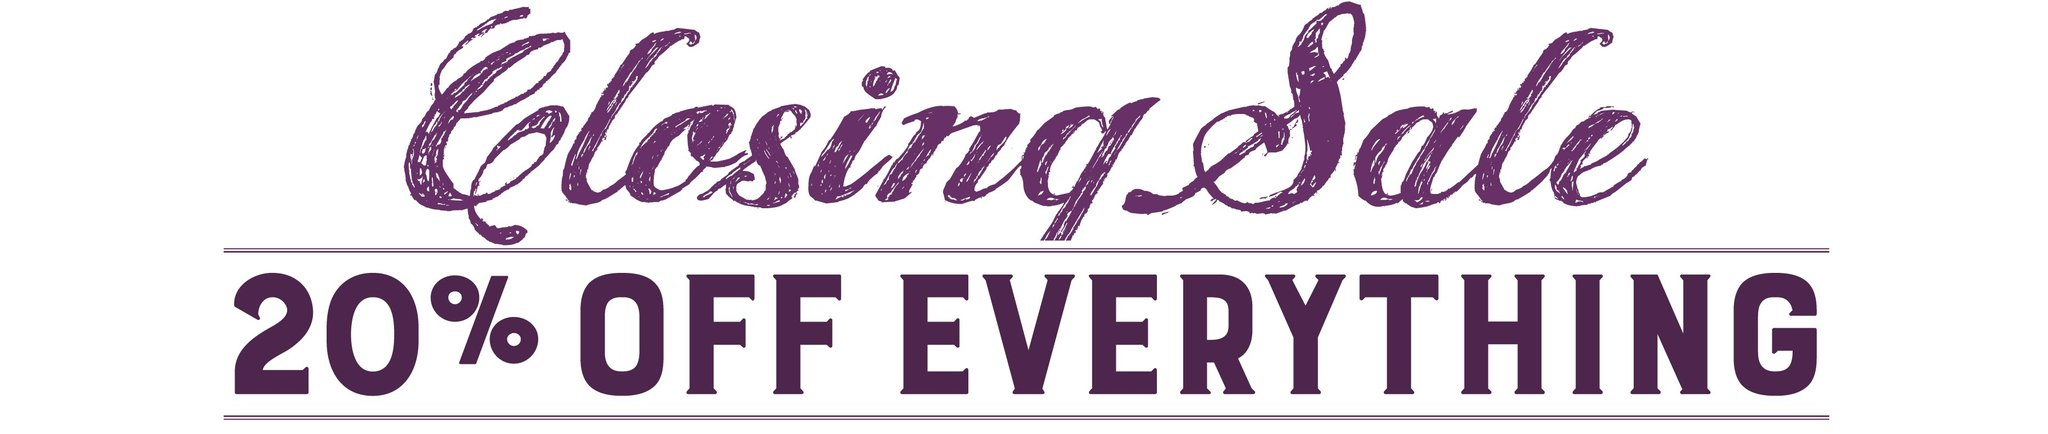 Closing Sale - 20% off everything